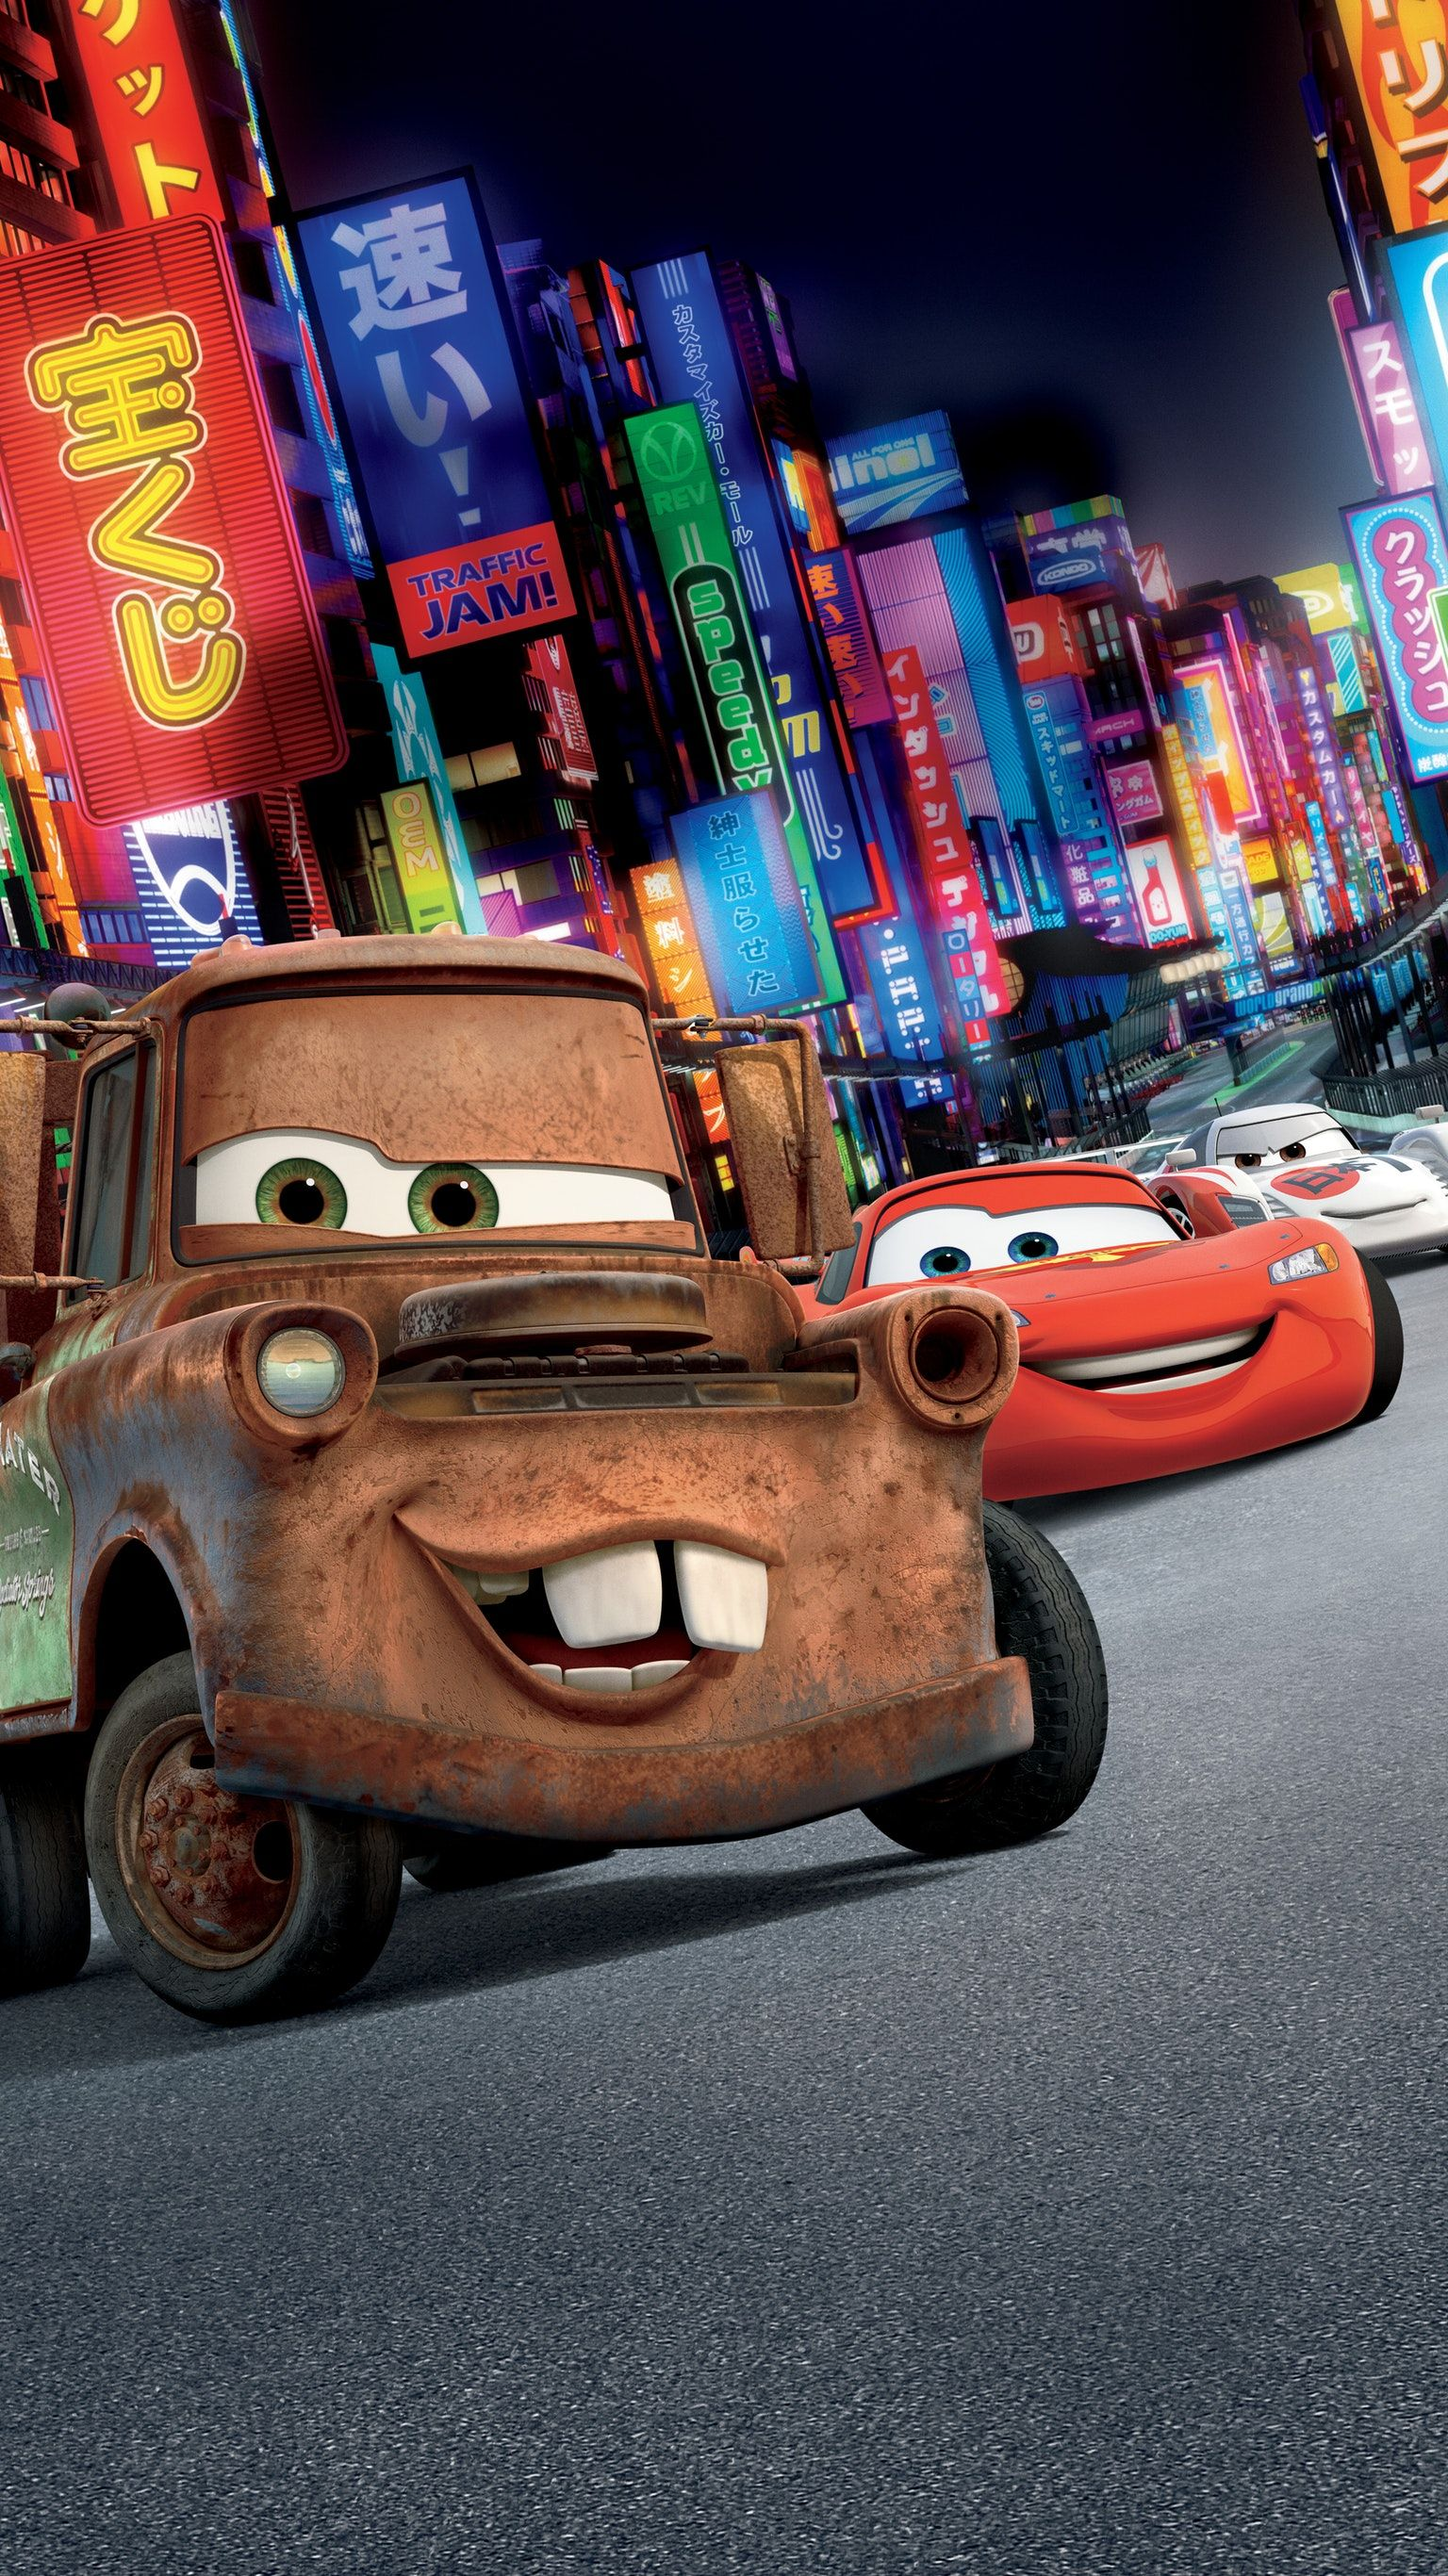 Cars 2 2011 Phone Wallpaper Moviemania Pixar Cars Disney Cars Cars 2 Movie